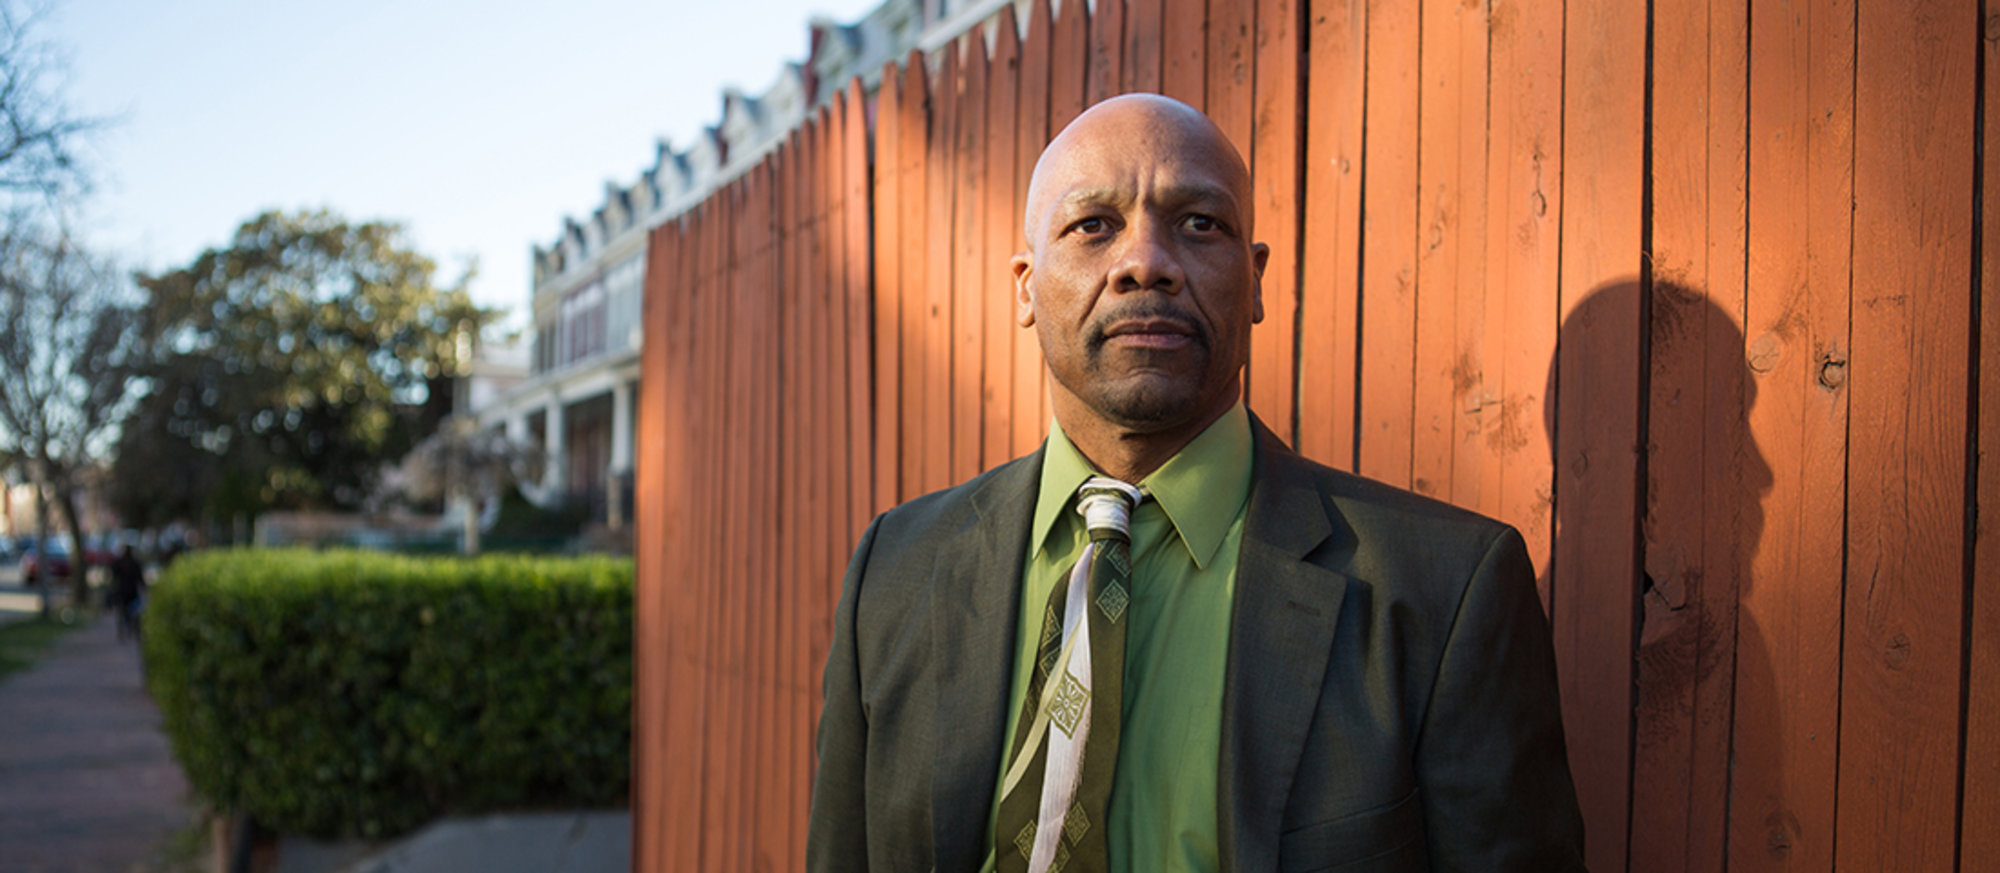 Chris Turner was paroled in 2010 after serving more than 25 years in prison.